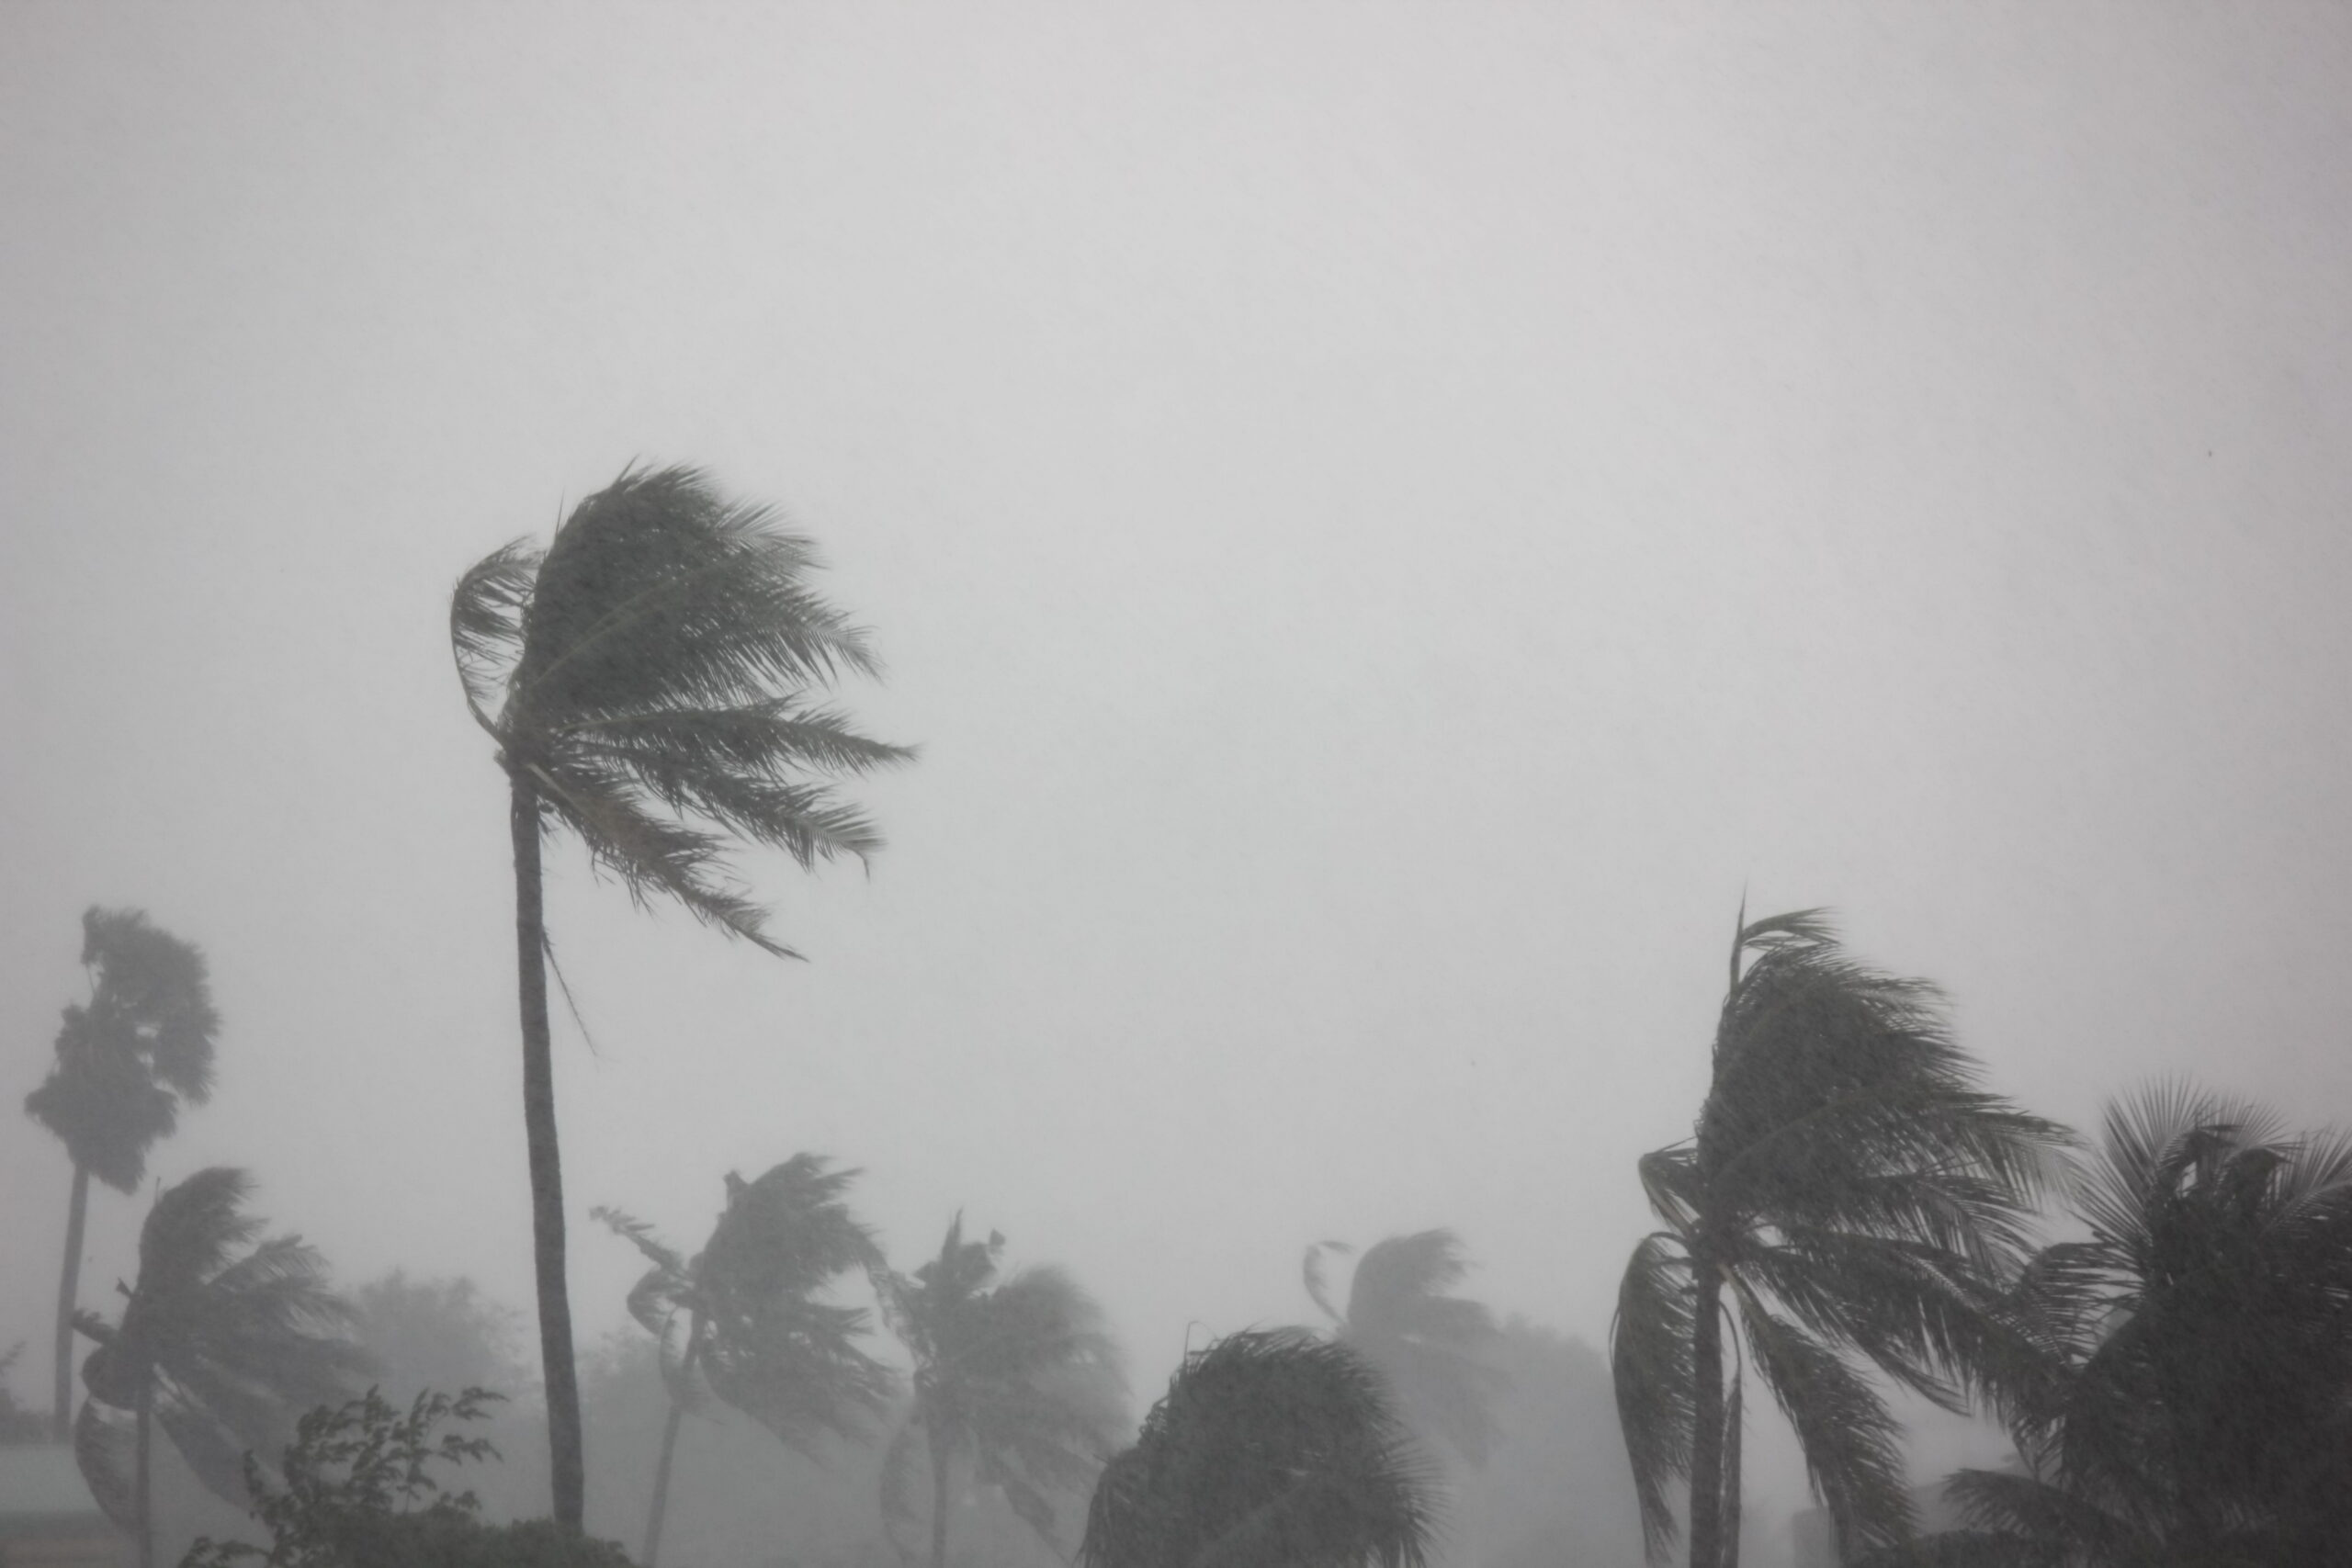 Tropical storm blowing palm trees hurricane